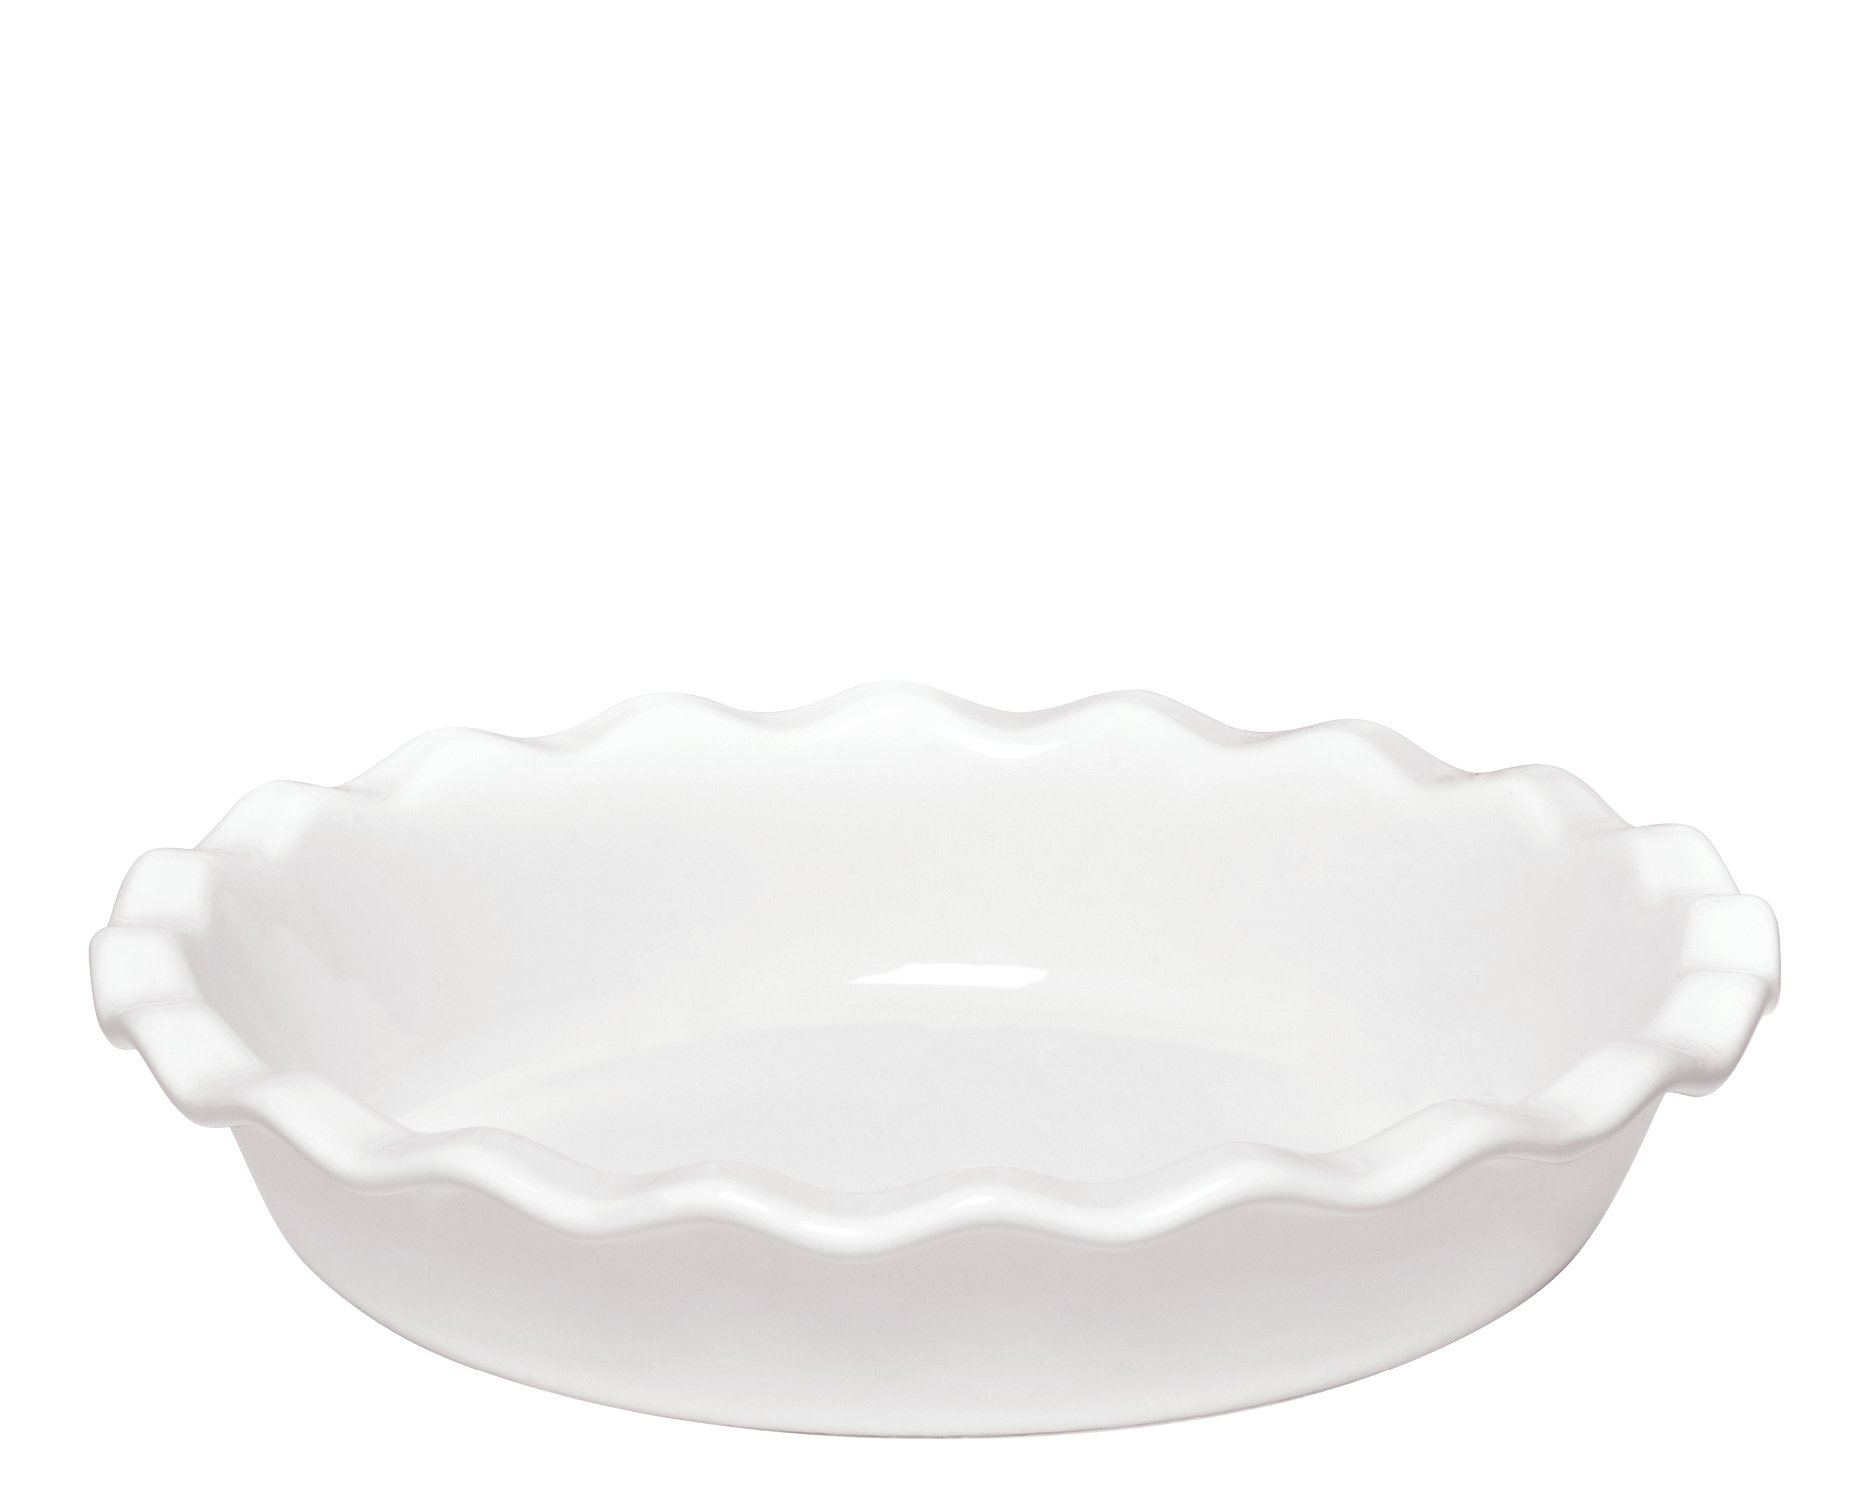 Emile Henry Made In France 9 Inch Pie Dish, Flour by Emile Henry